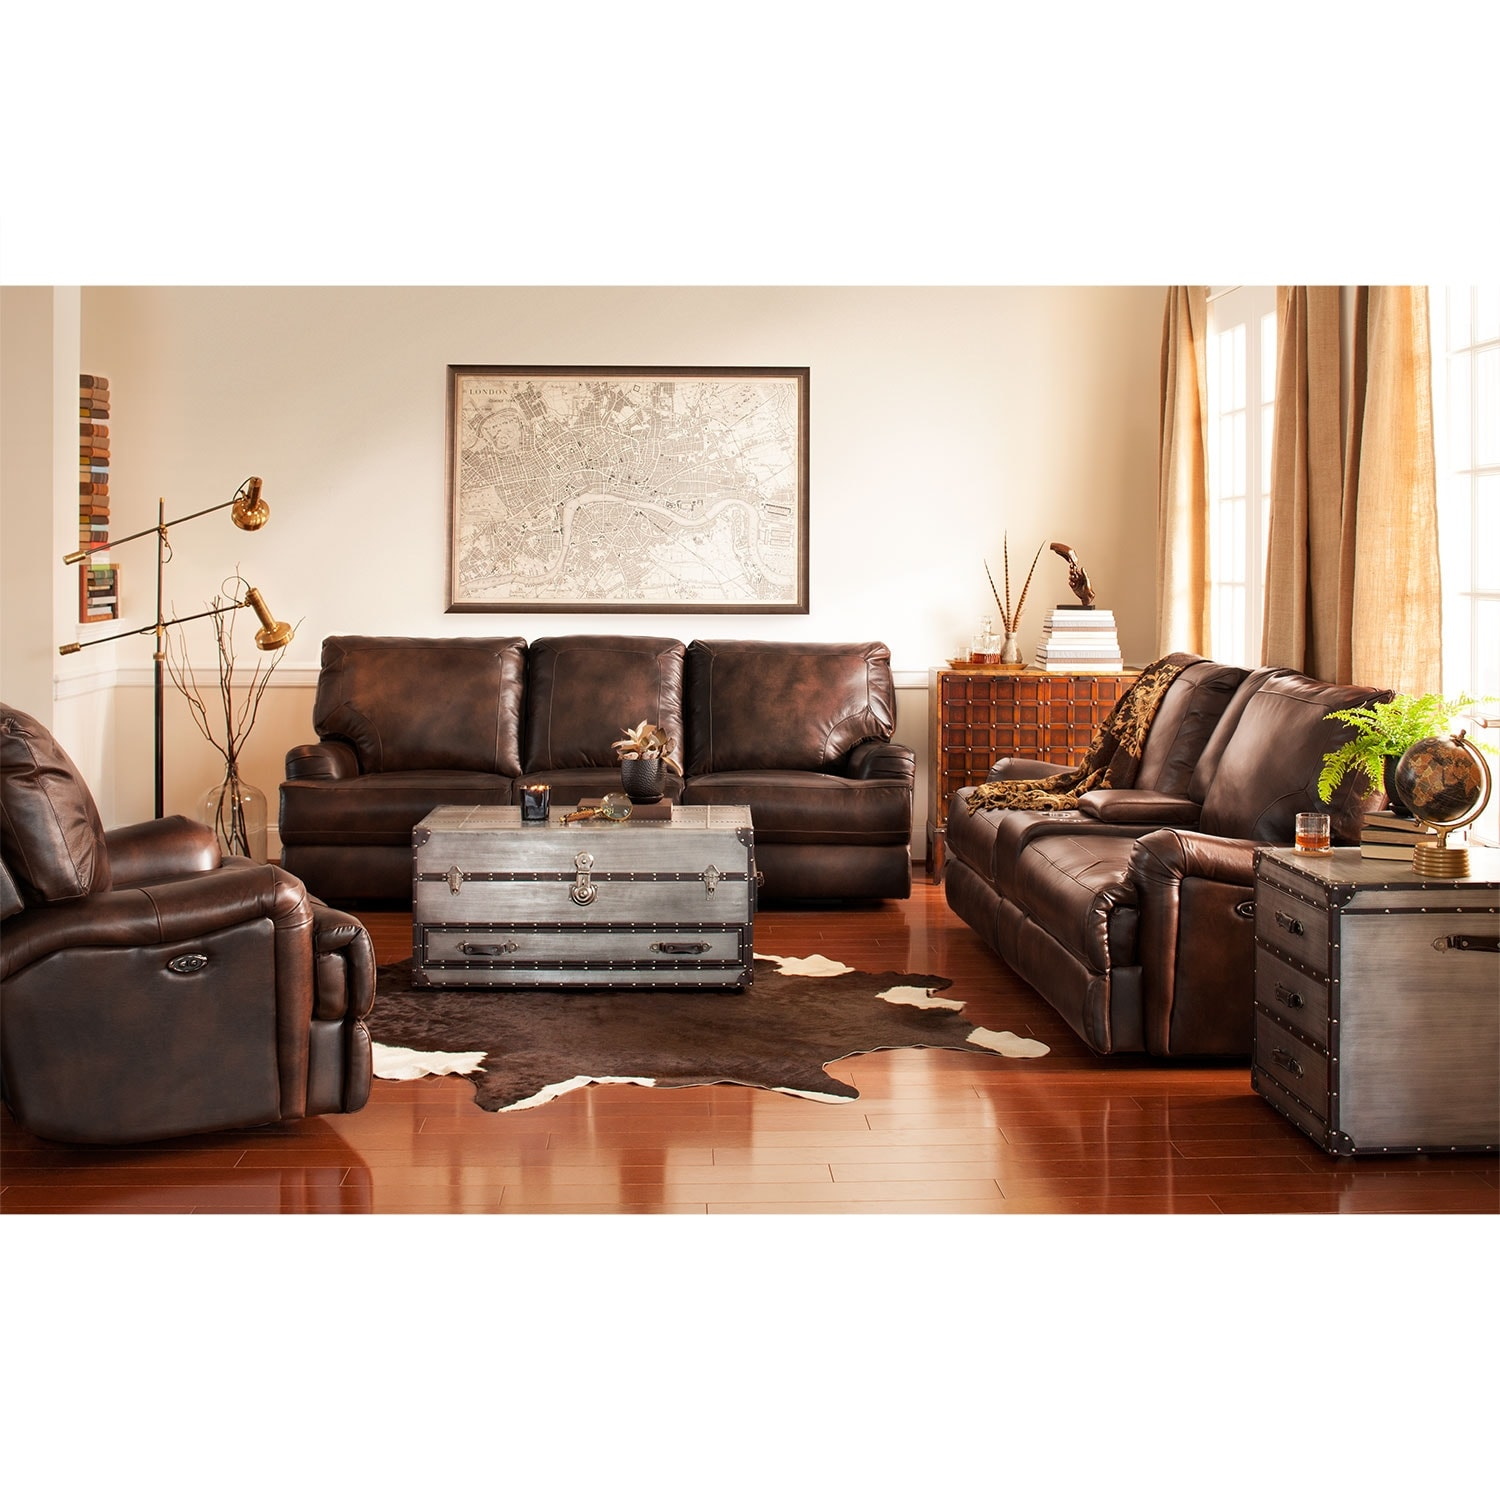 Kingsway Power Reclining Sofa, Loveseat and Recliner Set - Brown